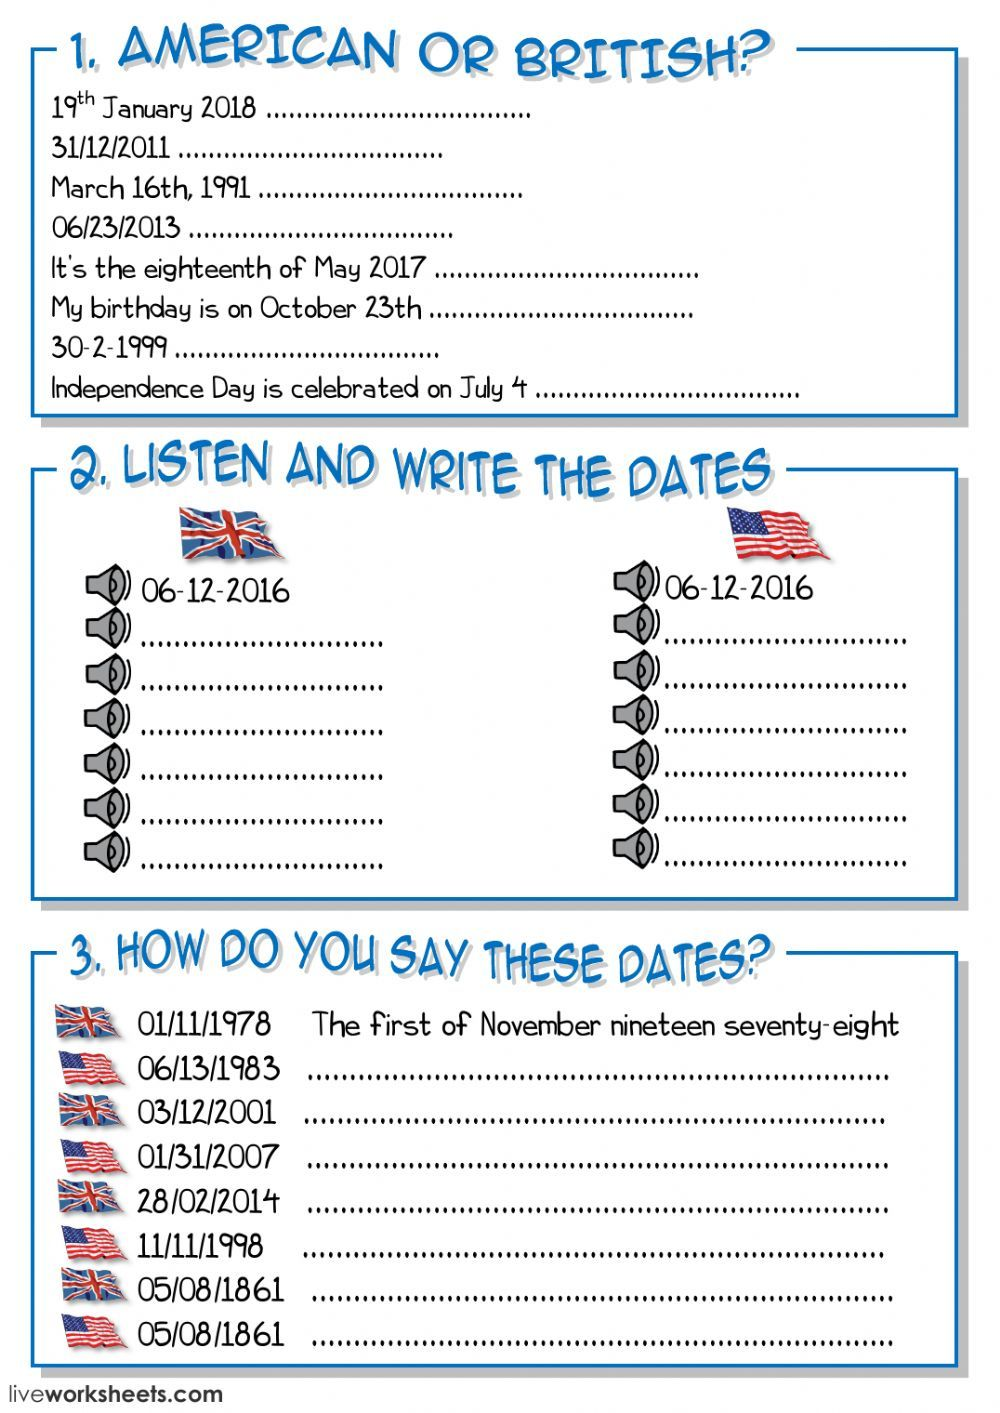 Days And Dates Interactive And Downloadable Worksheet You Can Do The Exercises Online Or Download The Works Teaching English Alphabet For Kids English Lessons [ 1413 x 1000 Pixel ]